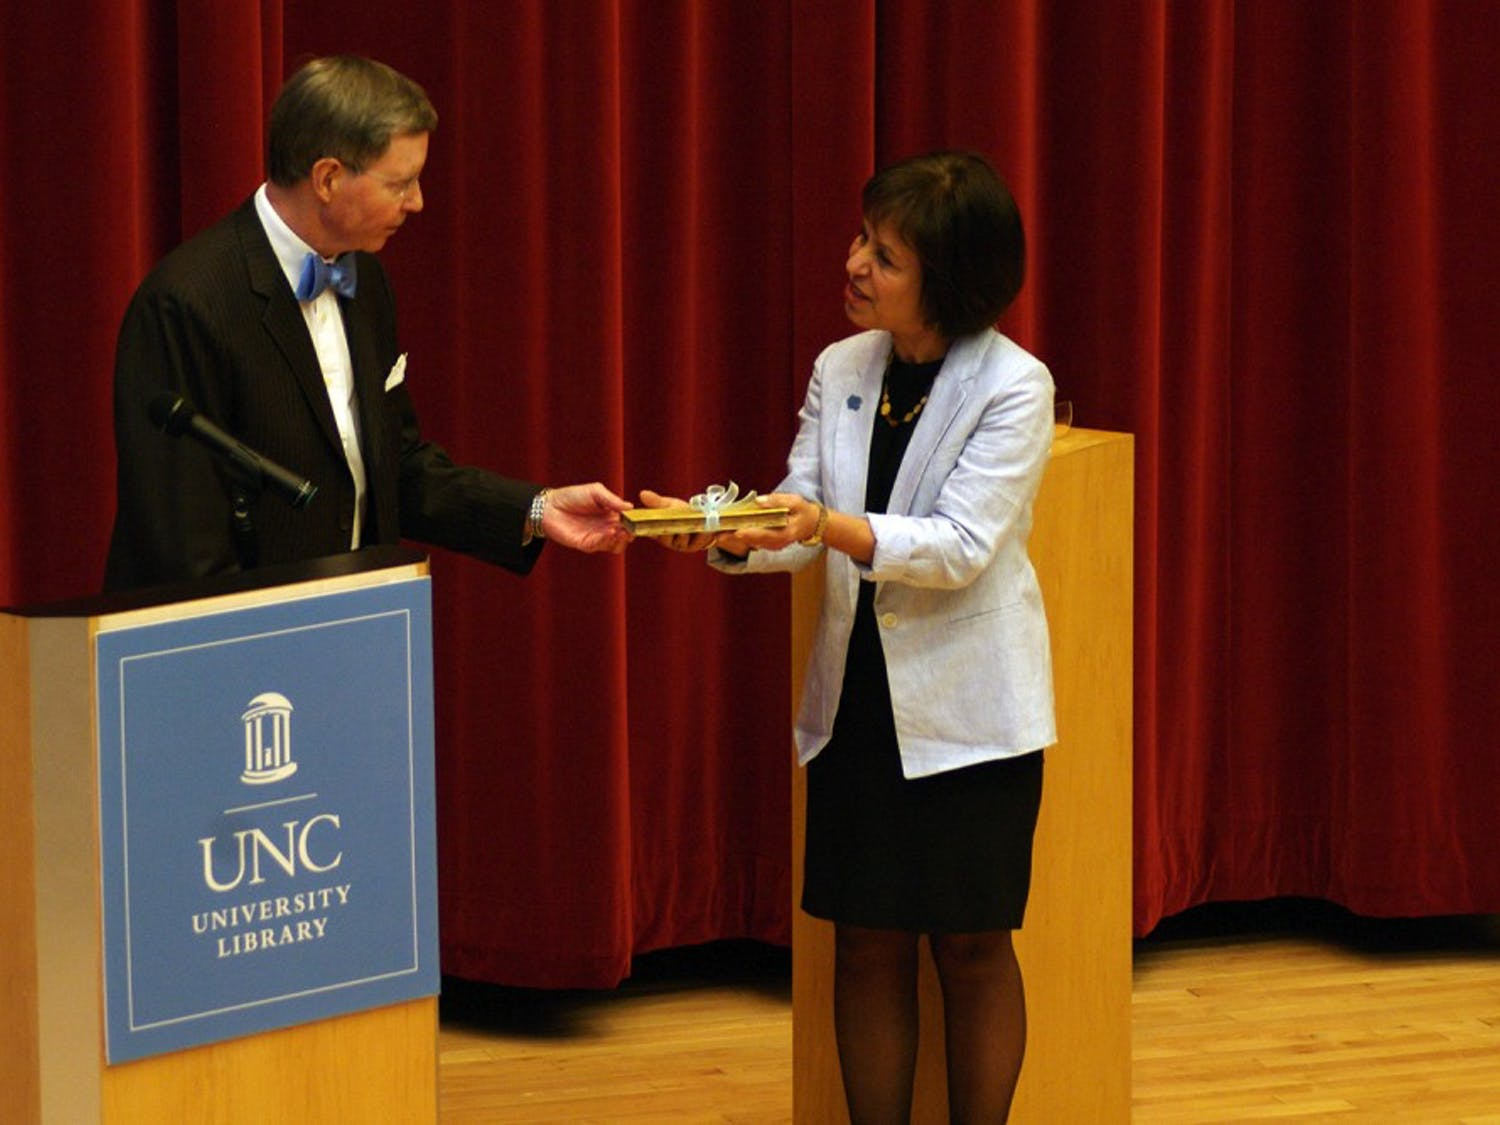 Chancellor Carol Folt accepted the 7 millionth book in the University of North Carolina's library, which was a gift from John Wesley and Anna Hodgins Hanes Foundation. Chancellor Carol Folt accepted the 7 millionth book in the University of North Carolina's library, which was a gift from John Wesley and Anna Hodgins Hanes Foundation, on Thursday Evening at the FedEx Global Education Center